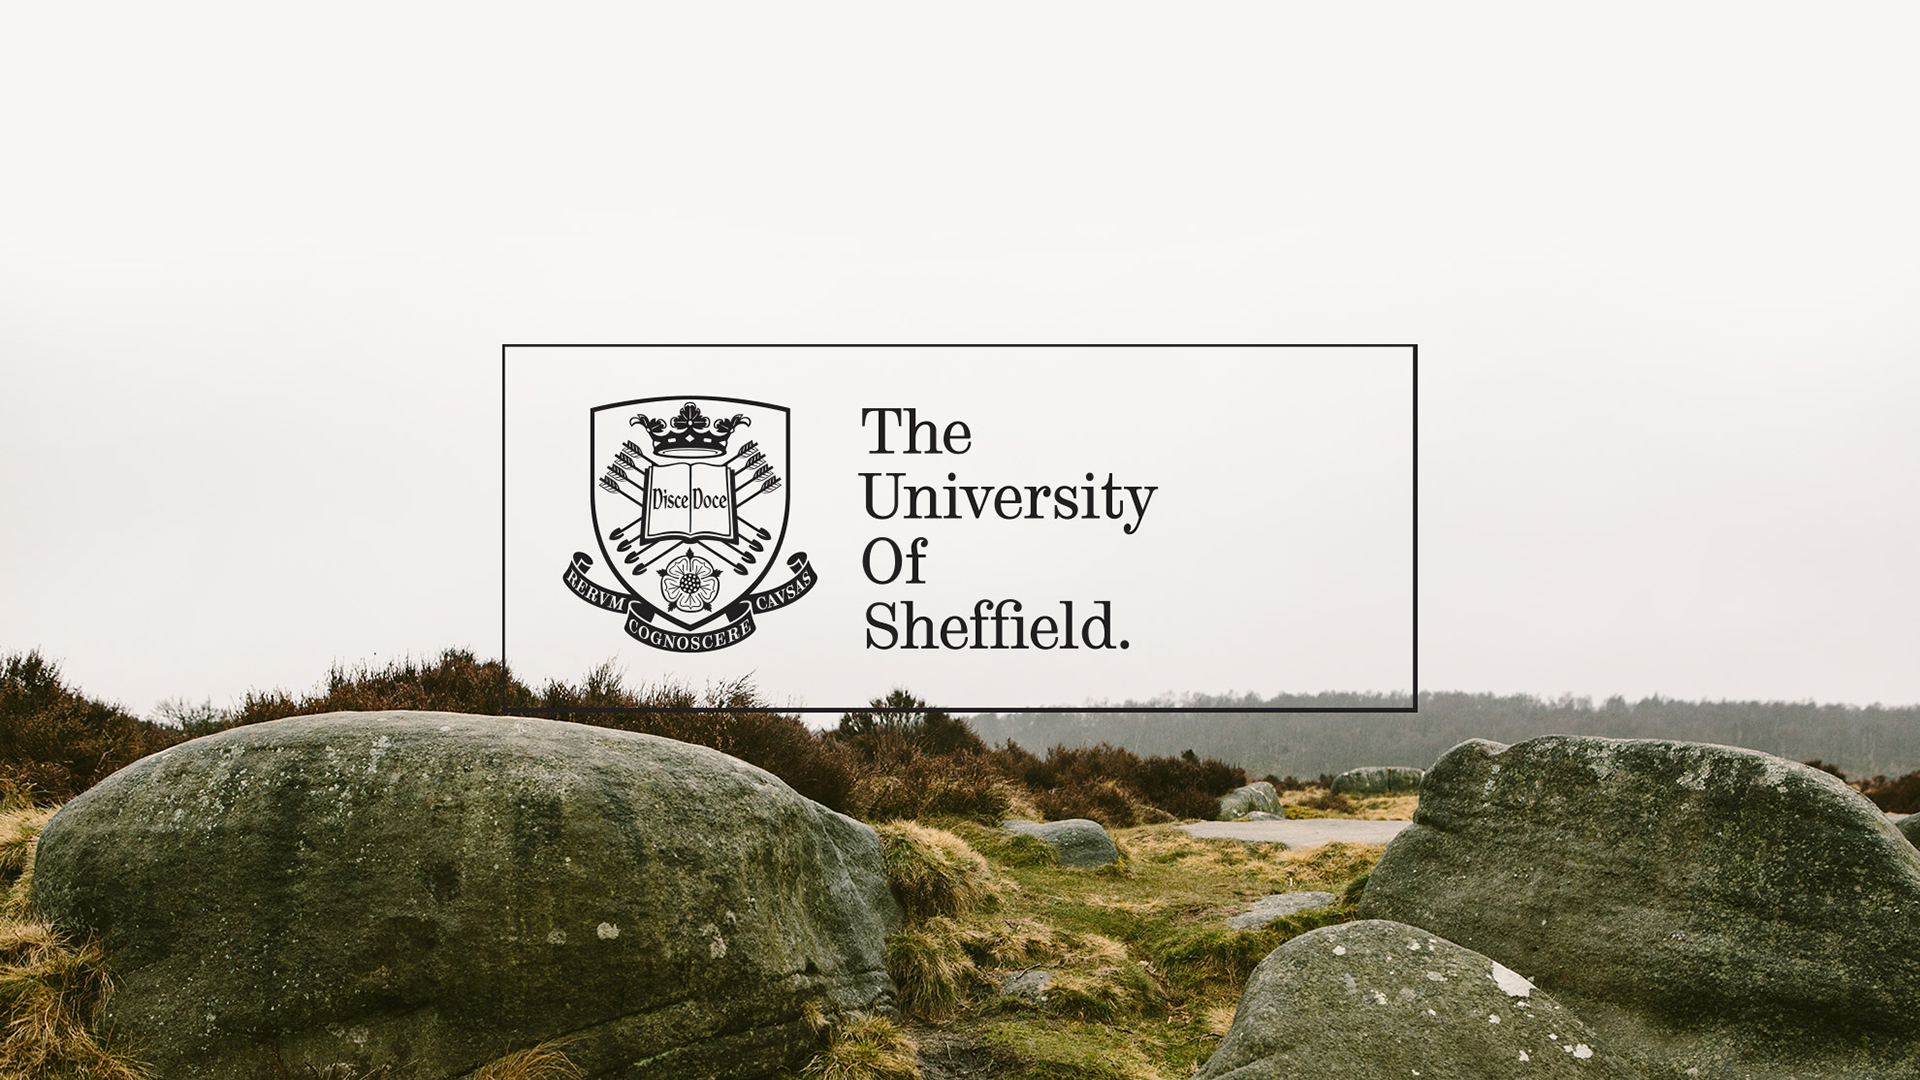 The University of Sheffield cover image